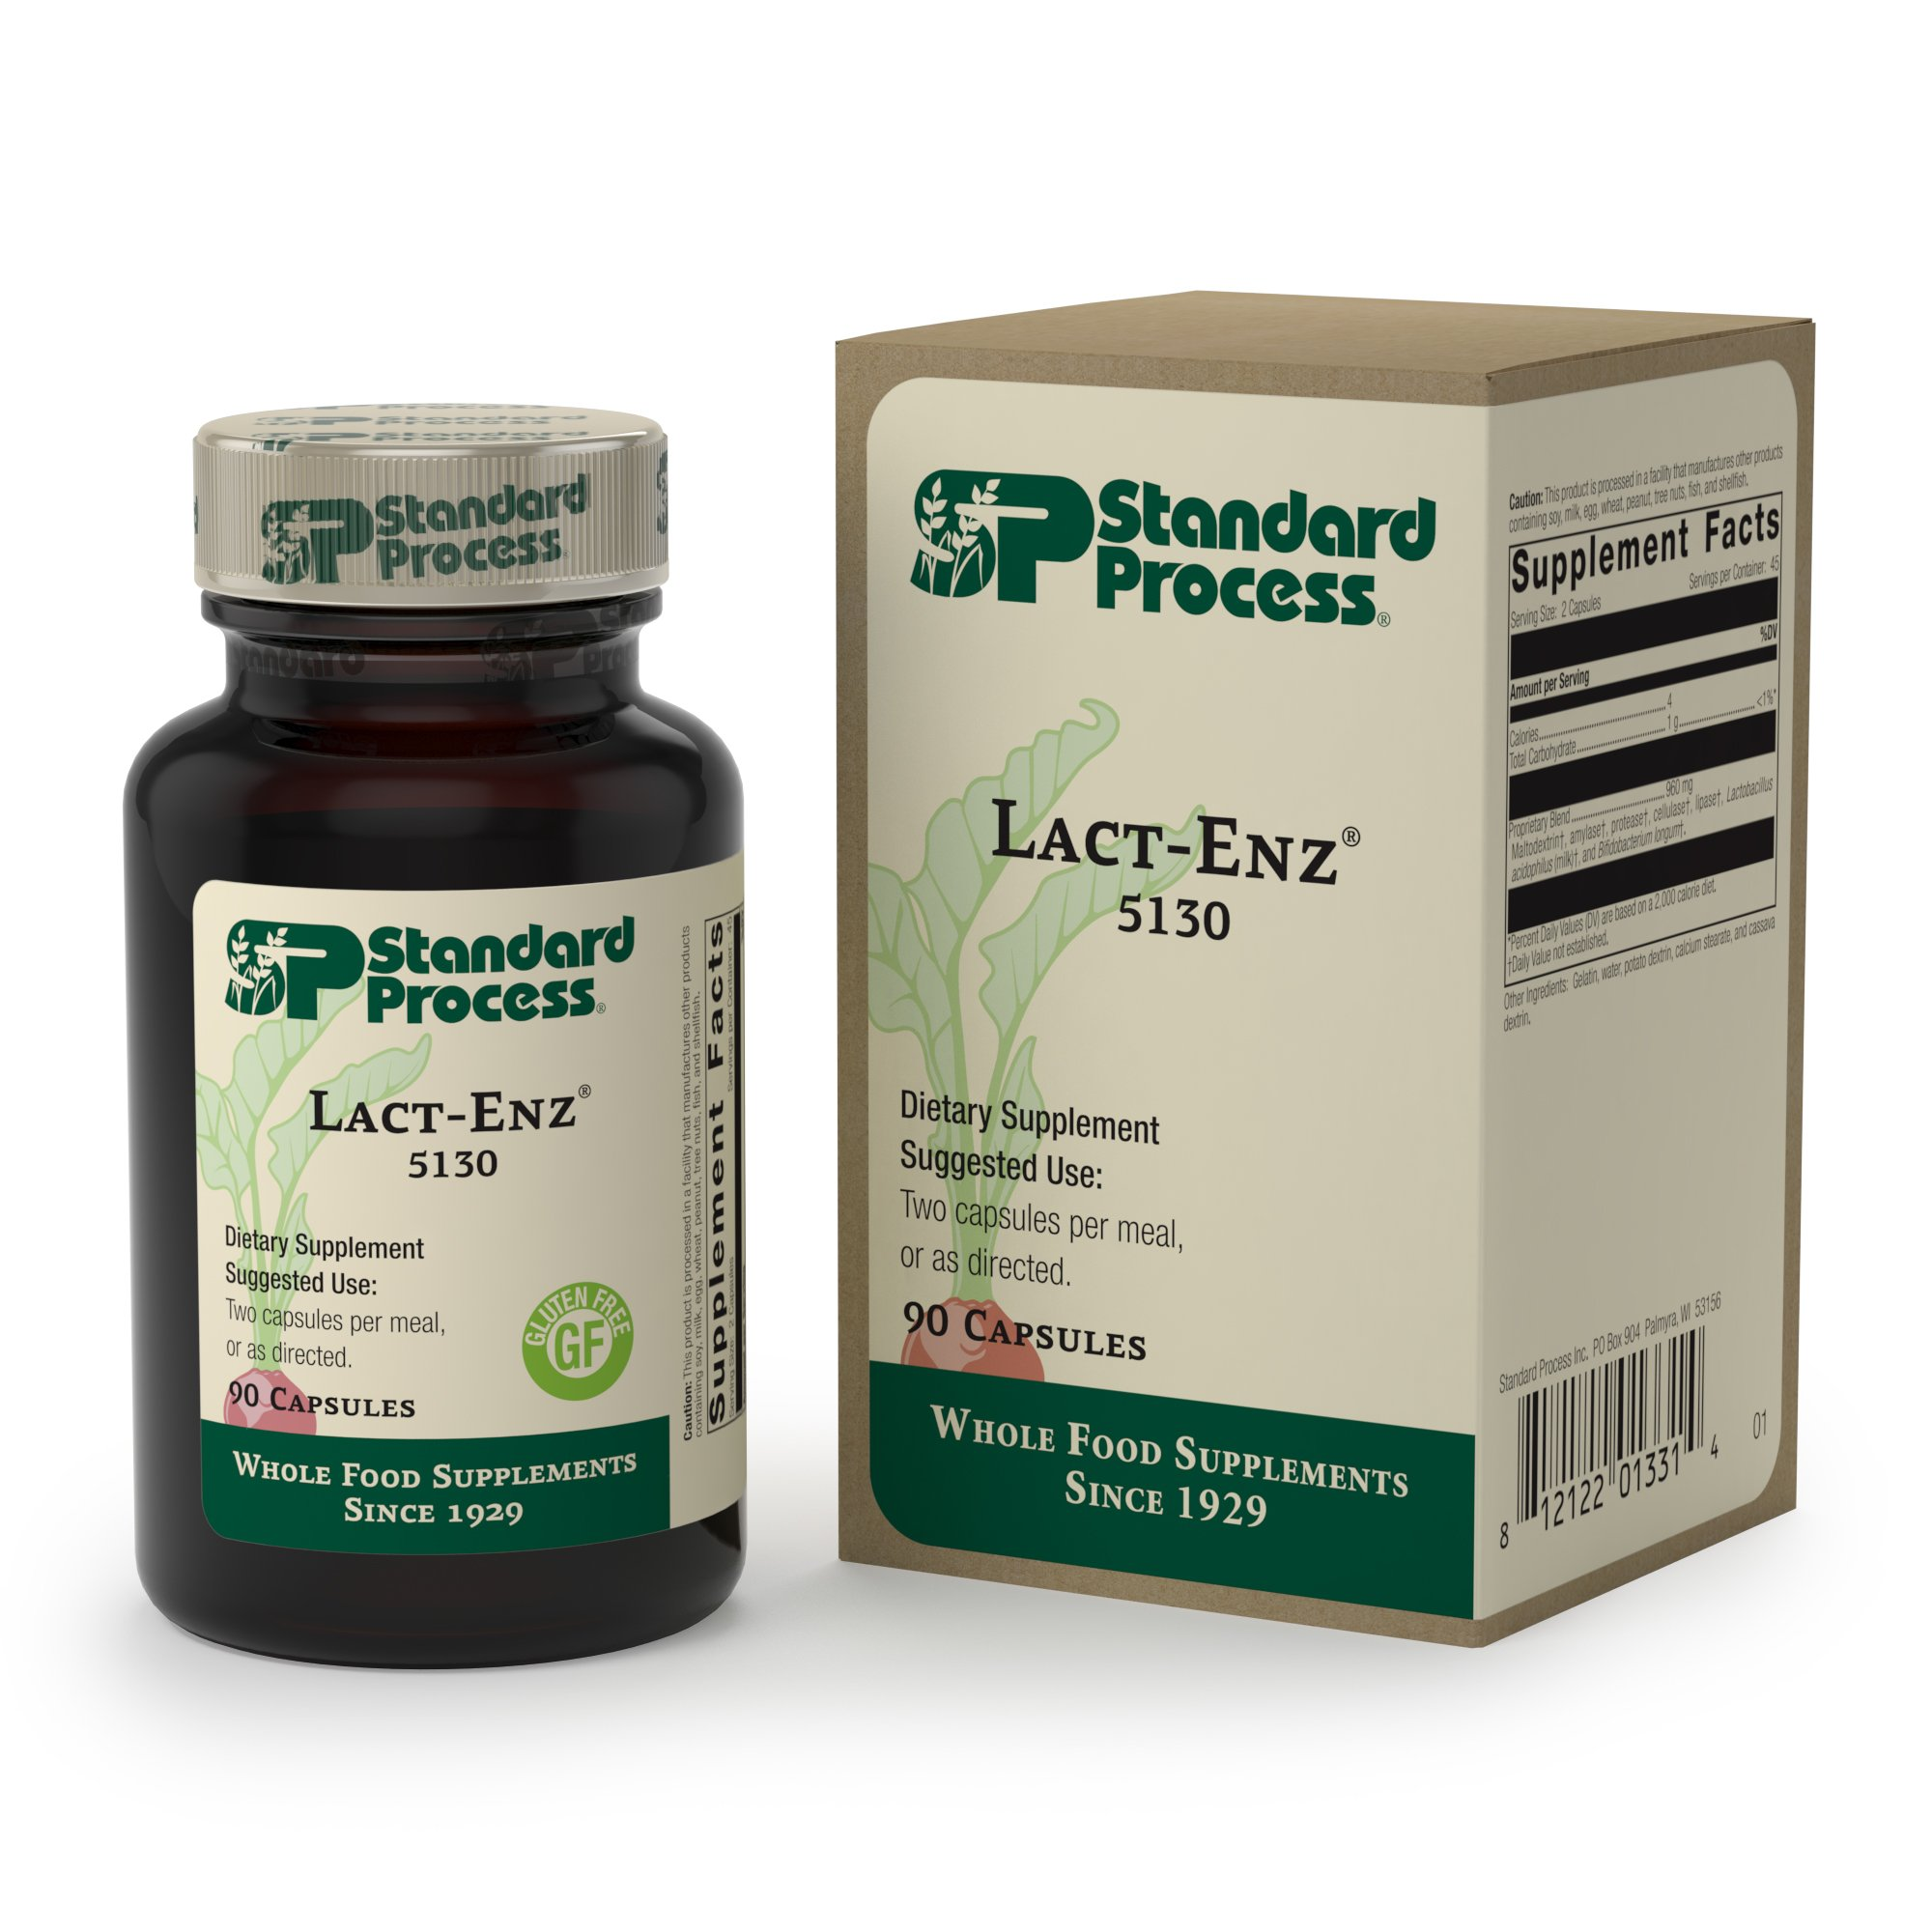 Standard Process - Lact-ENZ - Digestive Enzyme and Probiotic Supplement, Supports Digestion and Immune System Function, Gluten Free - 90 Capsules